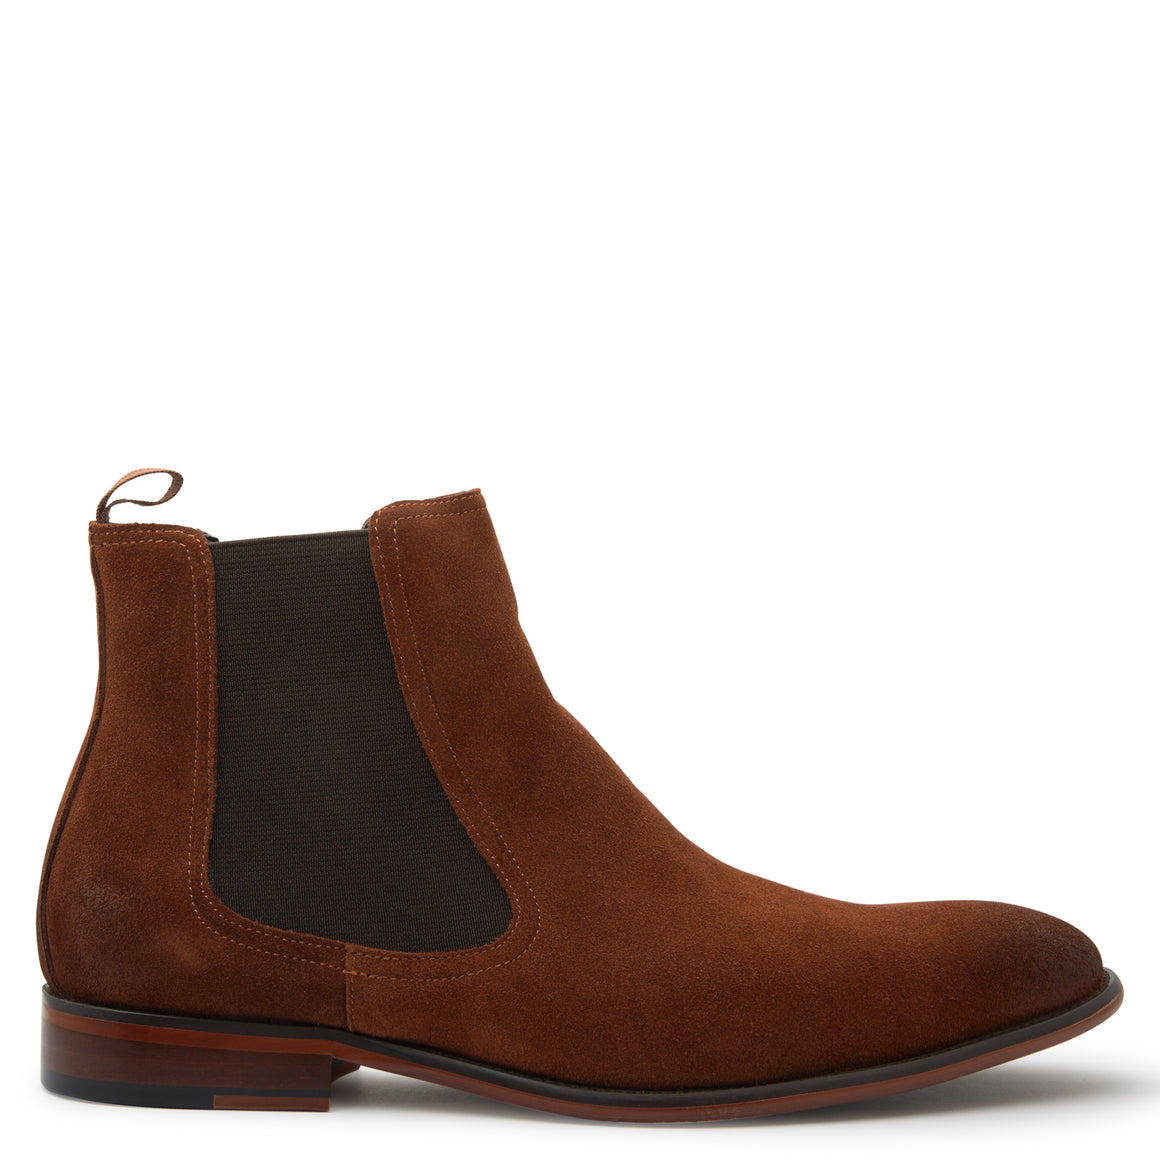 Jason Tobacco Chelsea Boots